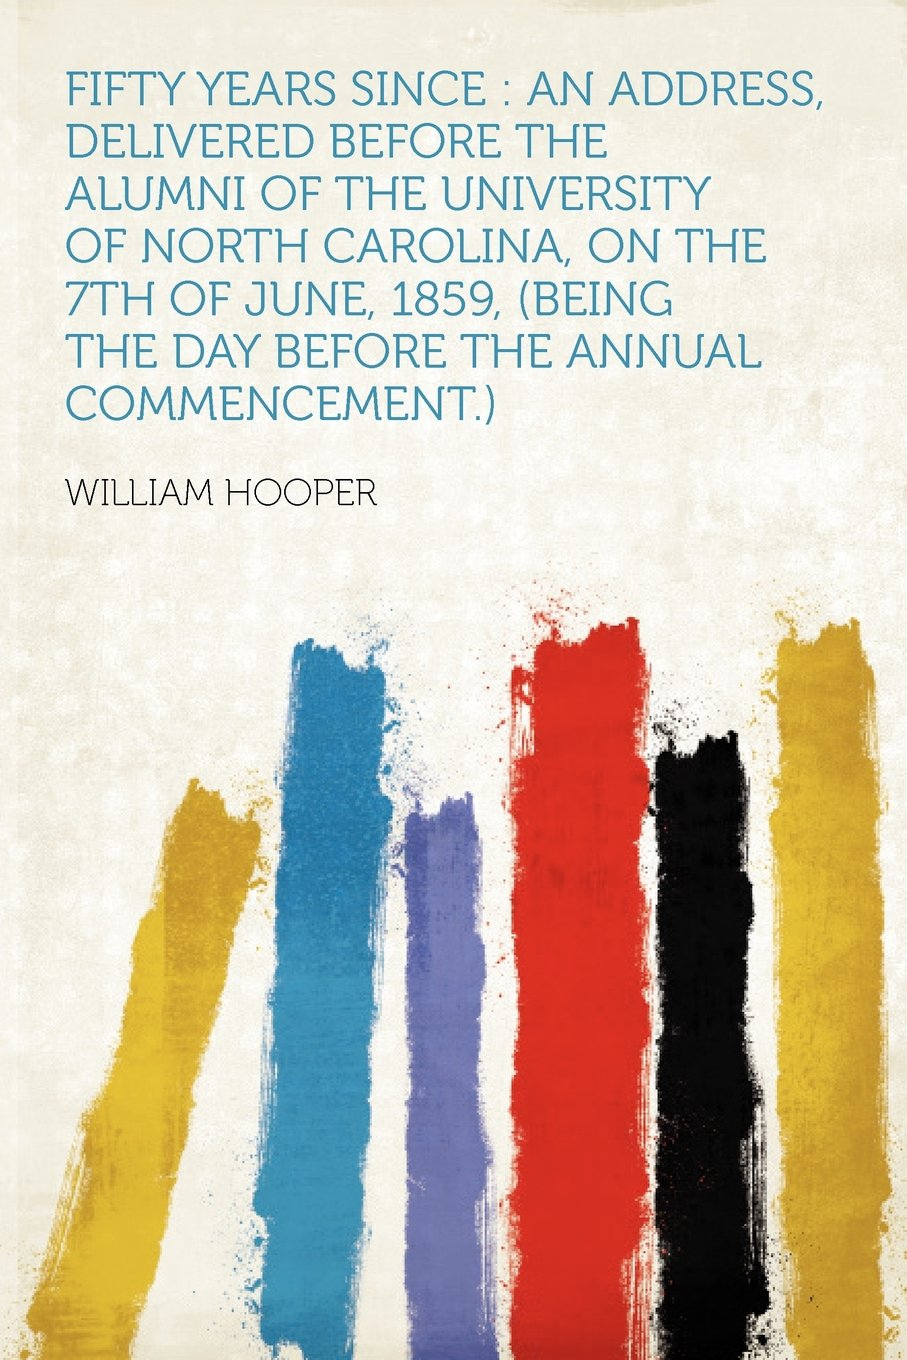 Fifty Years Since: an Address, Delivered Before the Alumni of the University of North Carolina, on the 7th of June, 1859, (being the Day Before the Annual Commencement.) ebook